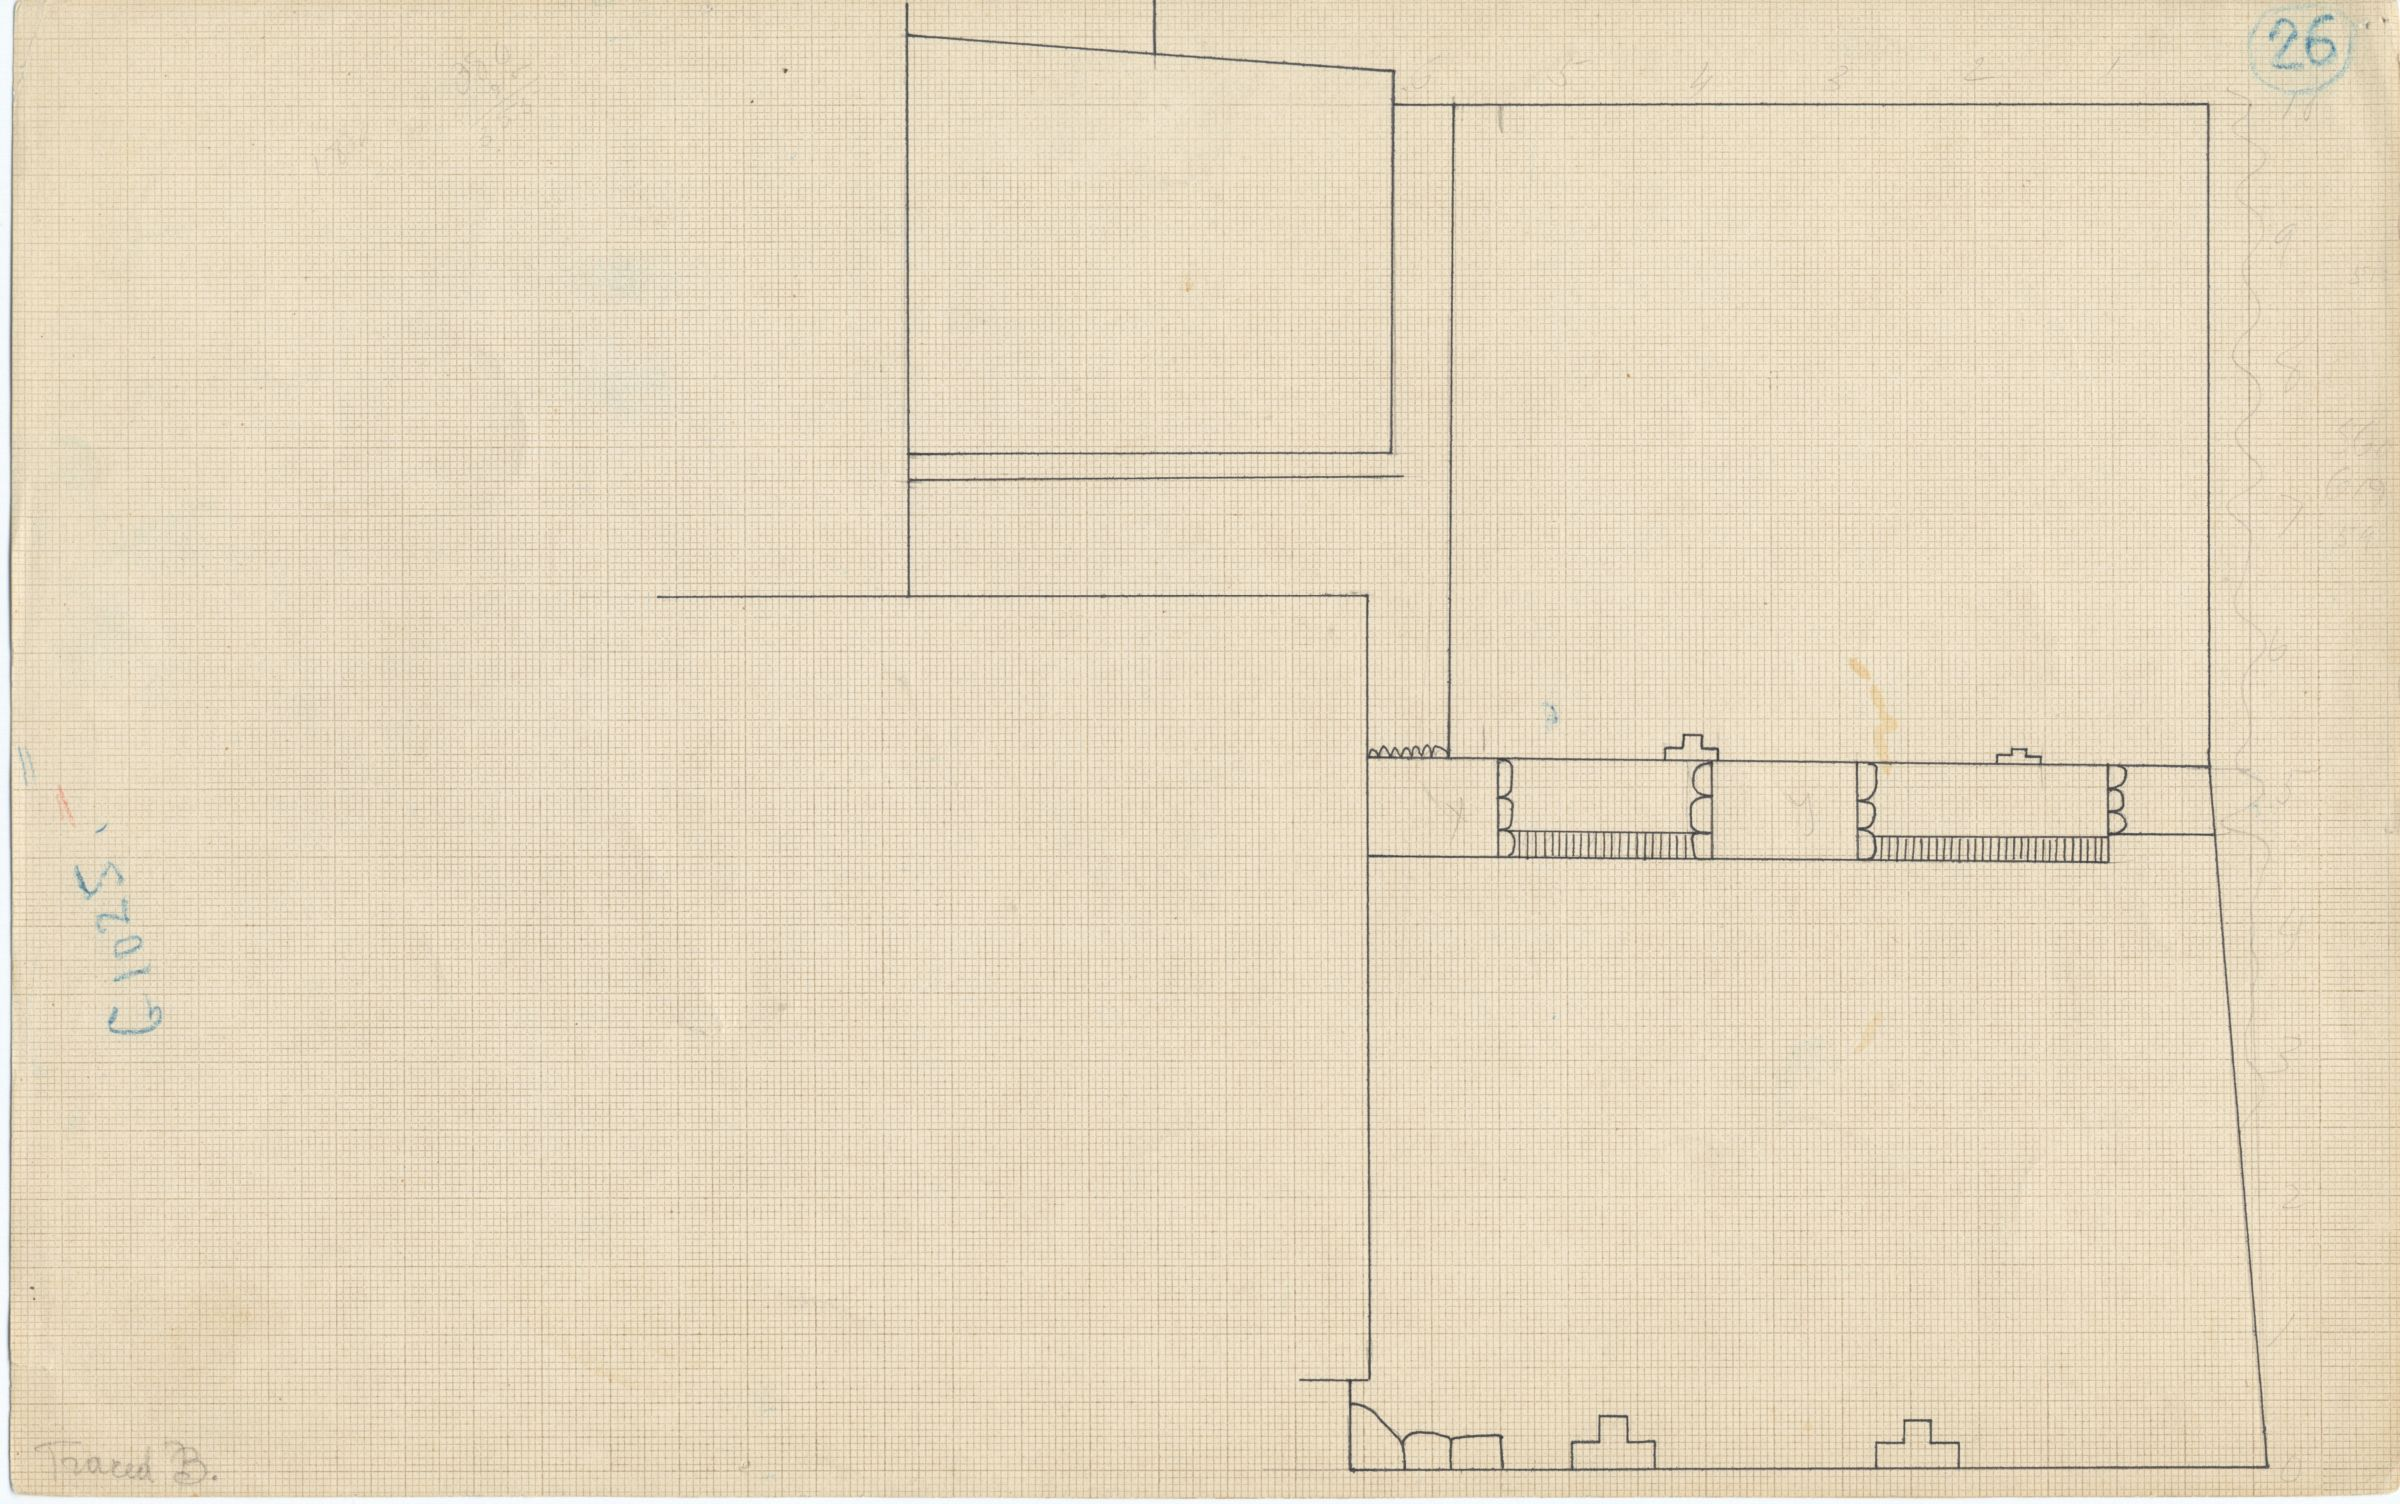 Maps and plans: Plan of G 1025 (G 1025a & G 1025b), with position of G 1023 and G 1024